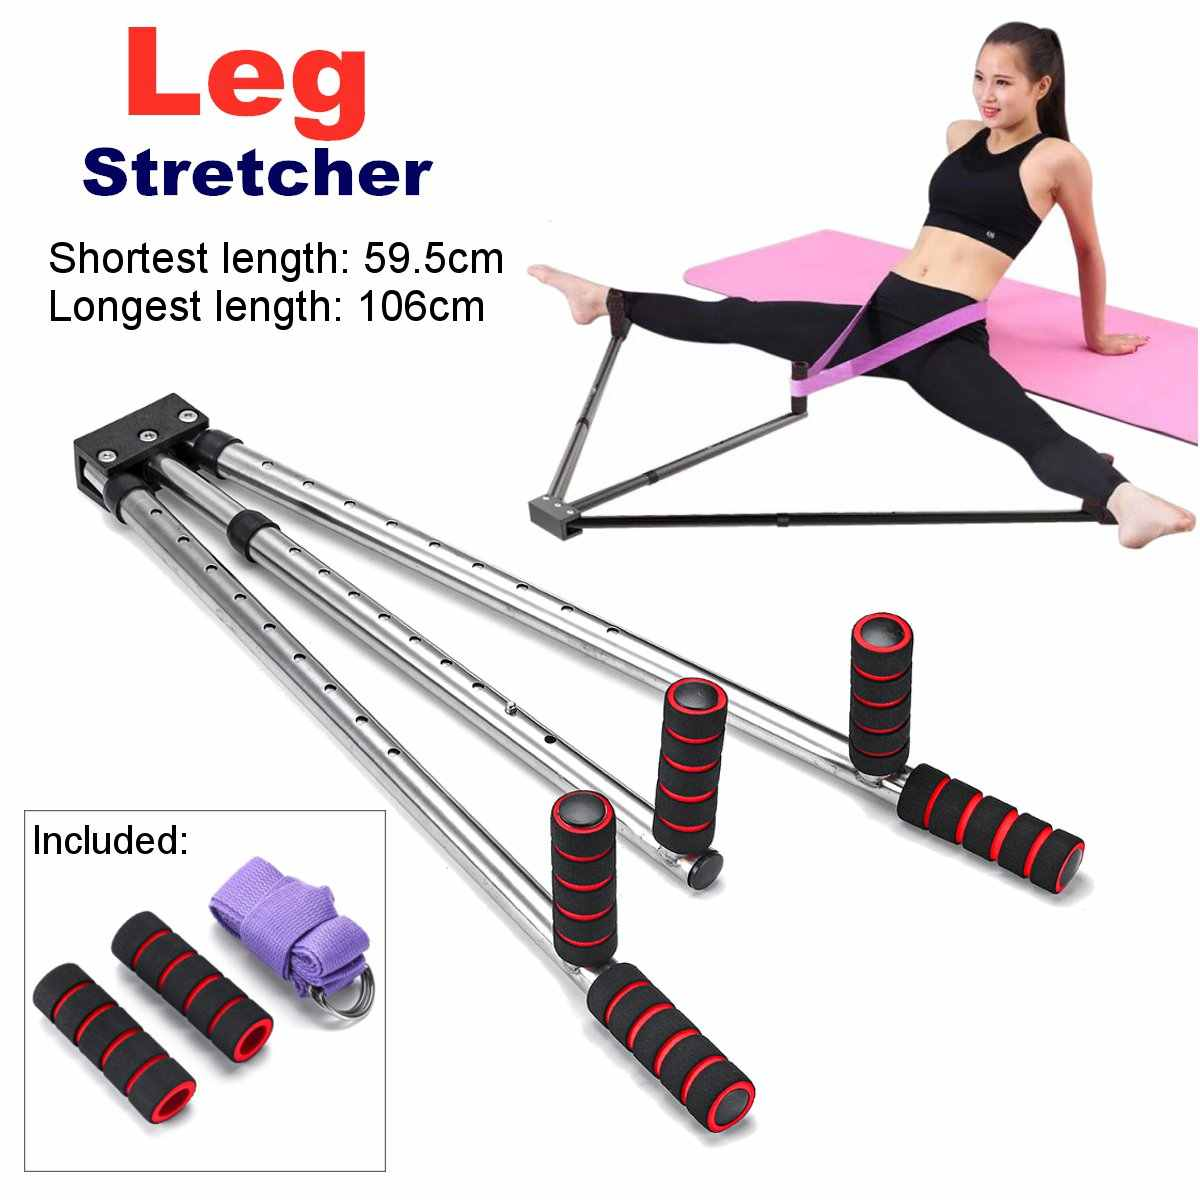 Leg Stretcher Extension Home Workout Stainless Steel Yoga Exercise Training Gym